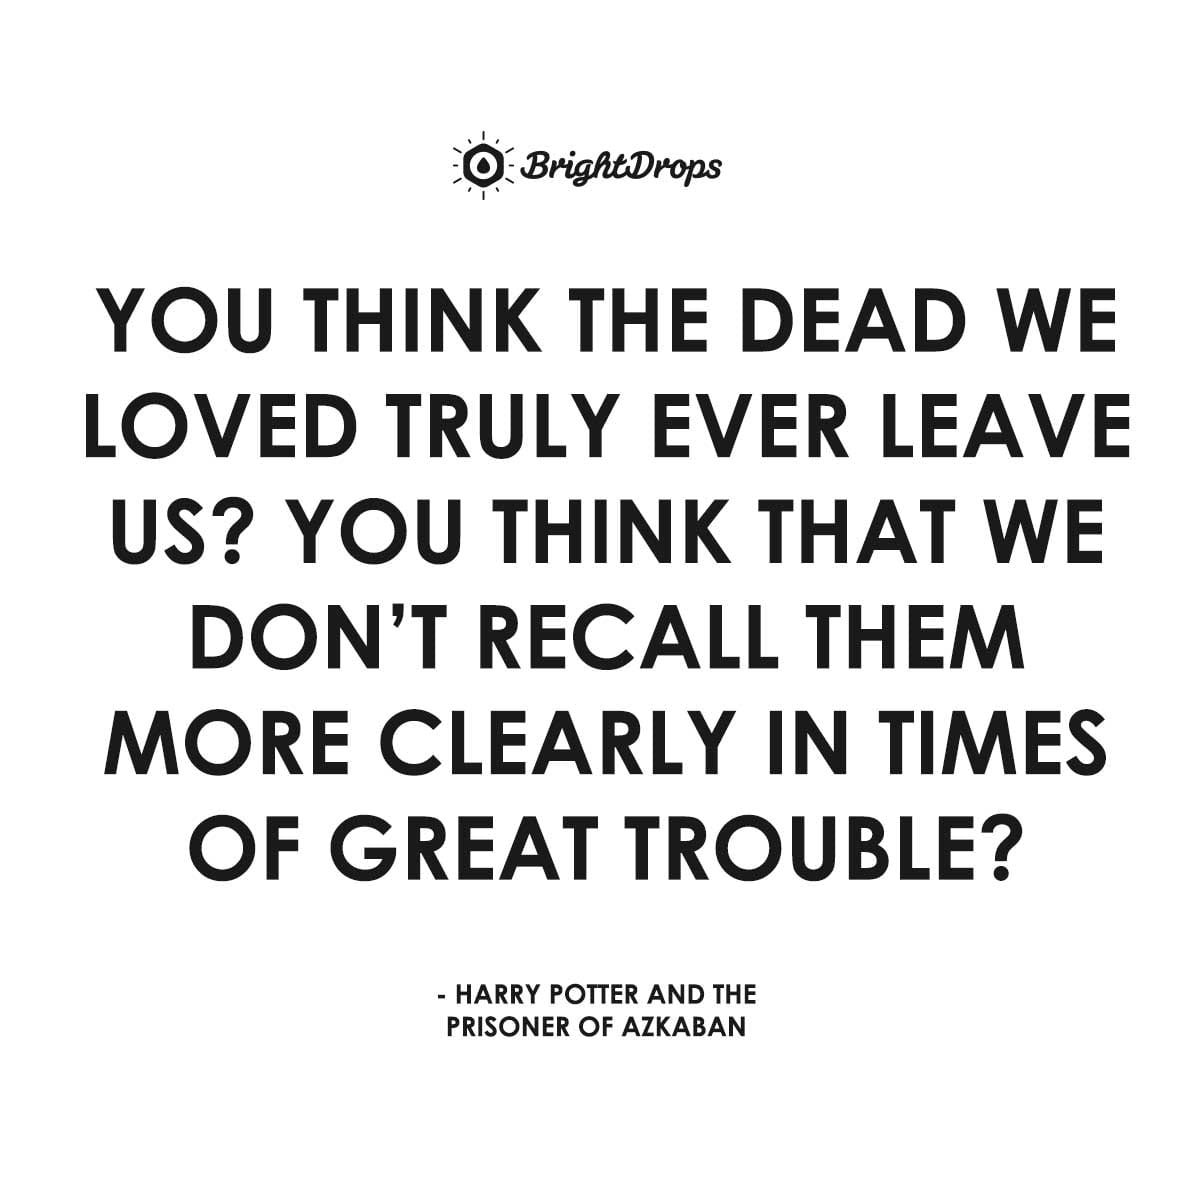 You think the dead we loved truly ever leave us? You think that we don't recall them more clearly in times of great trouble? - Harry Potter and the Prisoner of Azkaban